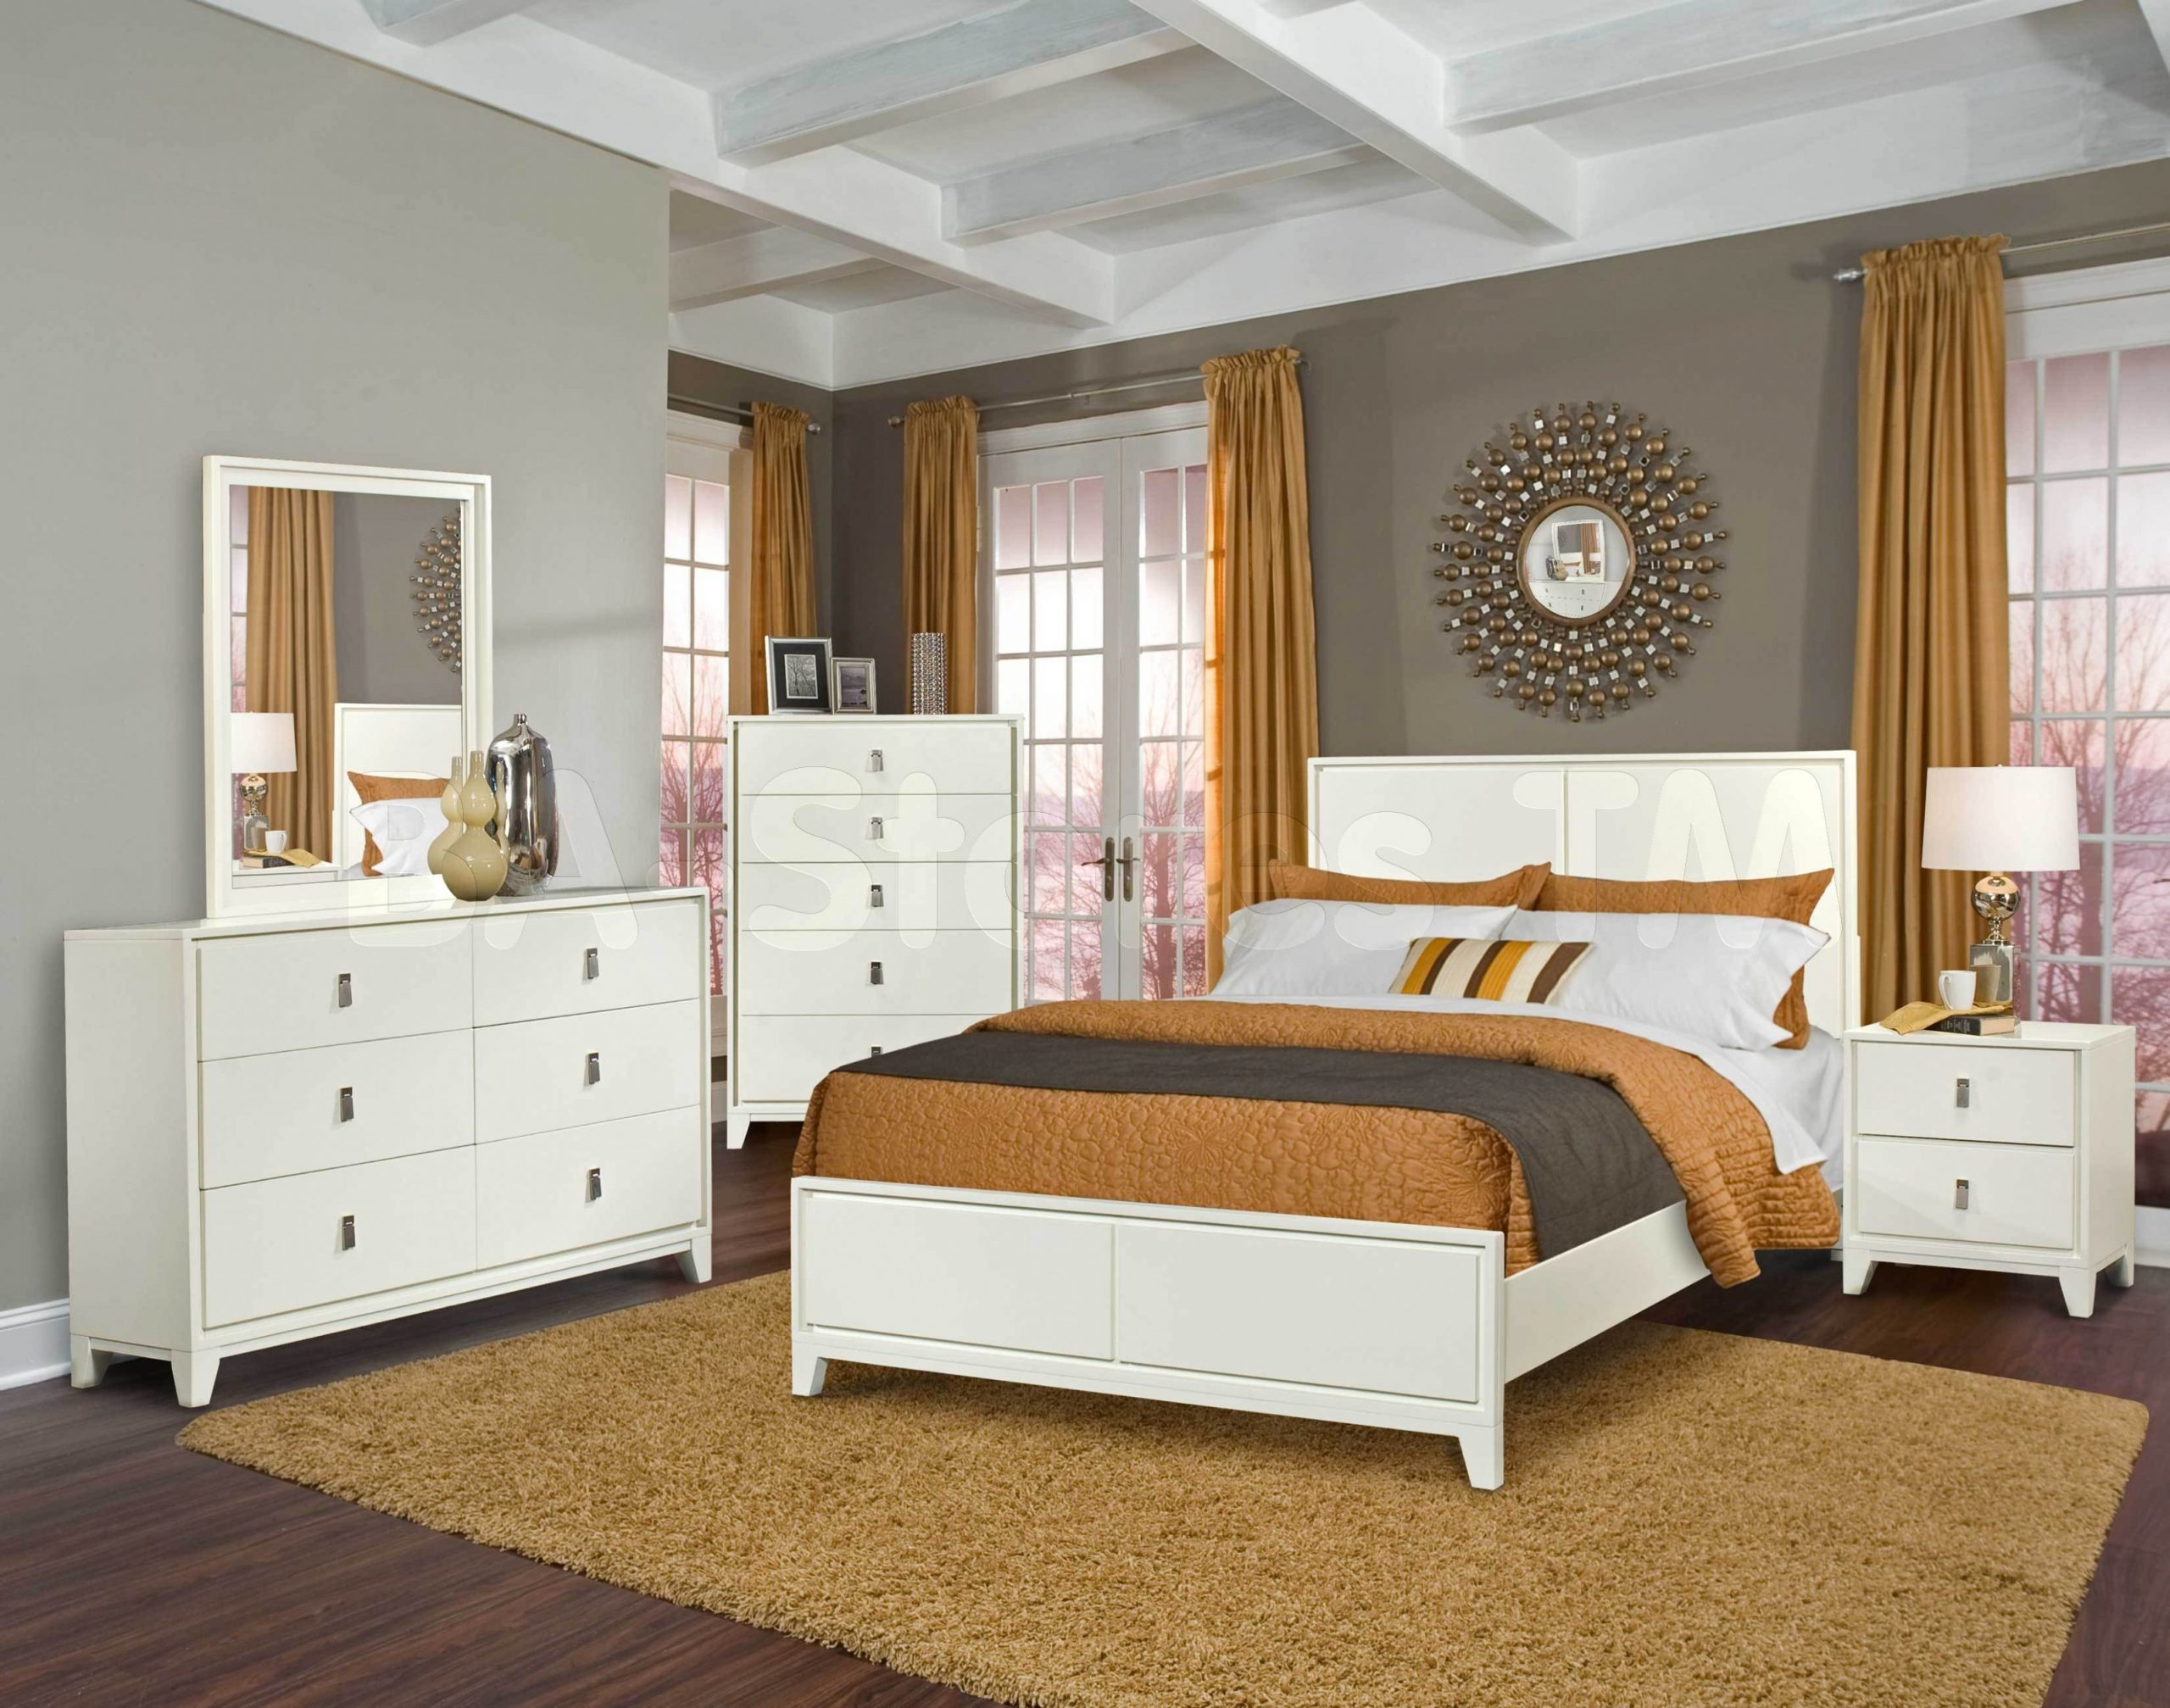 12 Timeless Bedroom Designs With Wooden Furniture For Pleasant Stay - Bedroom Ideas With Oak Furniture